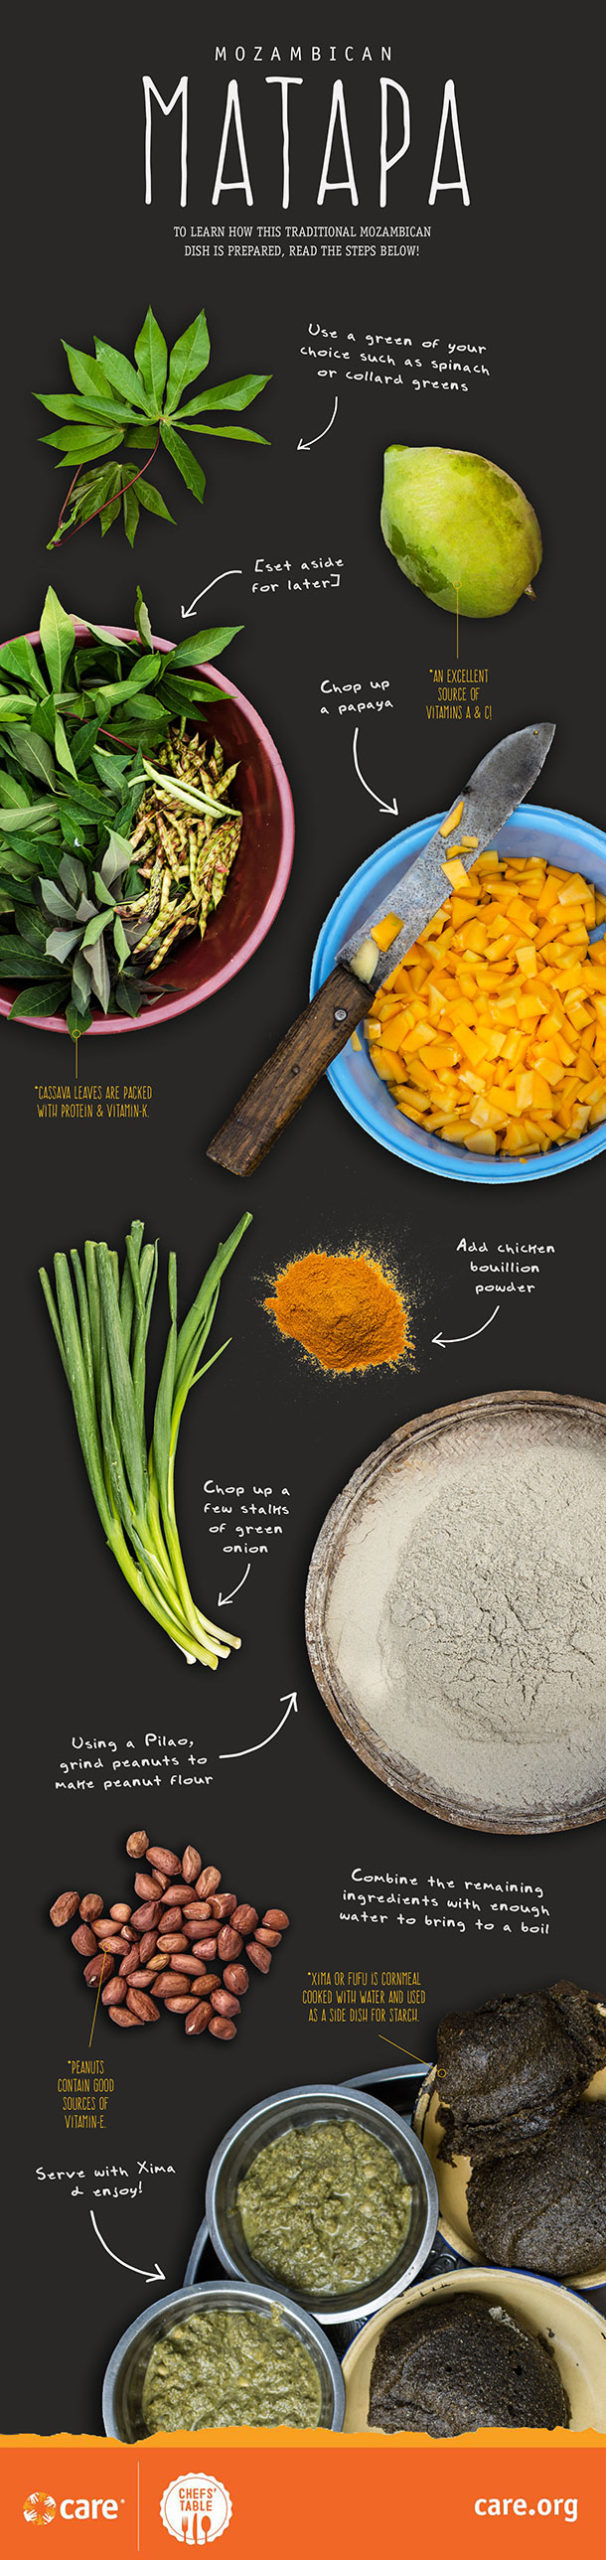 A graphic featuring ingredients and instructions to make Mozambican matapa.